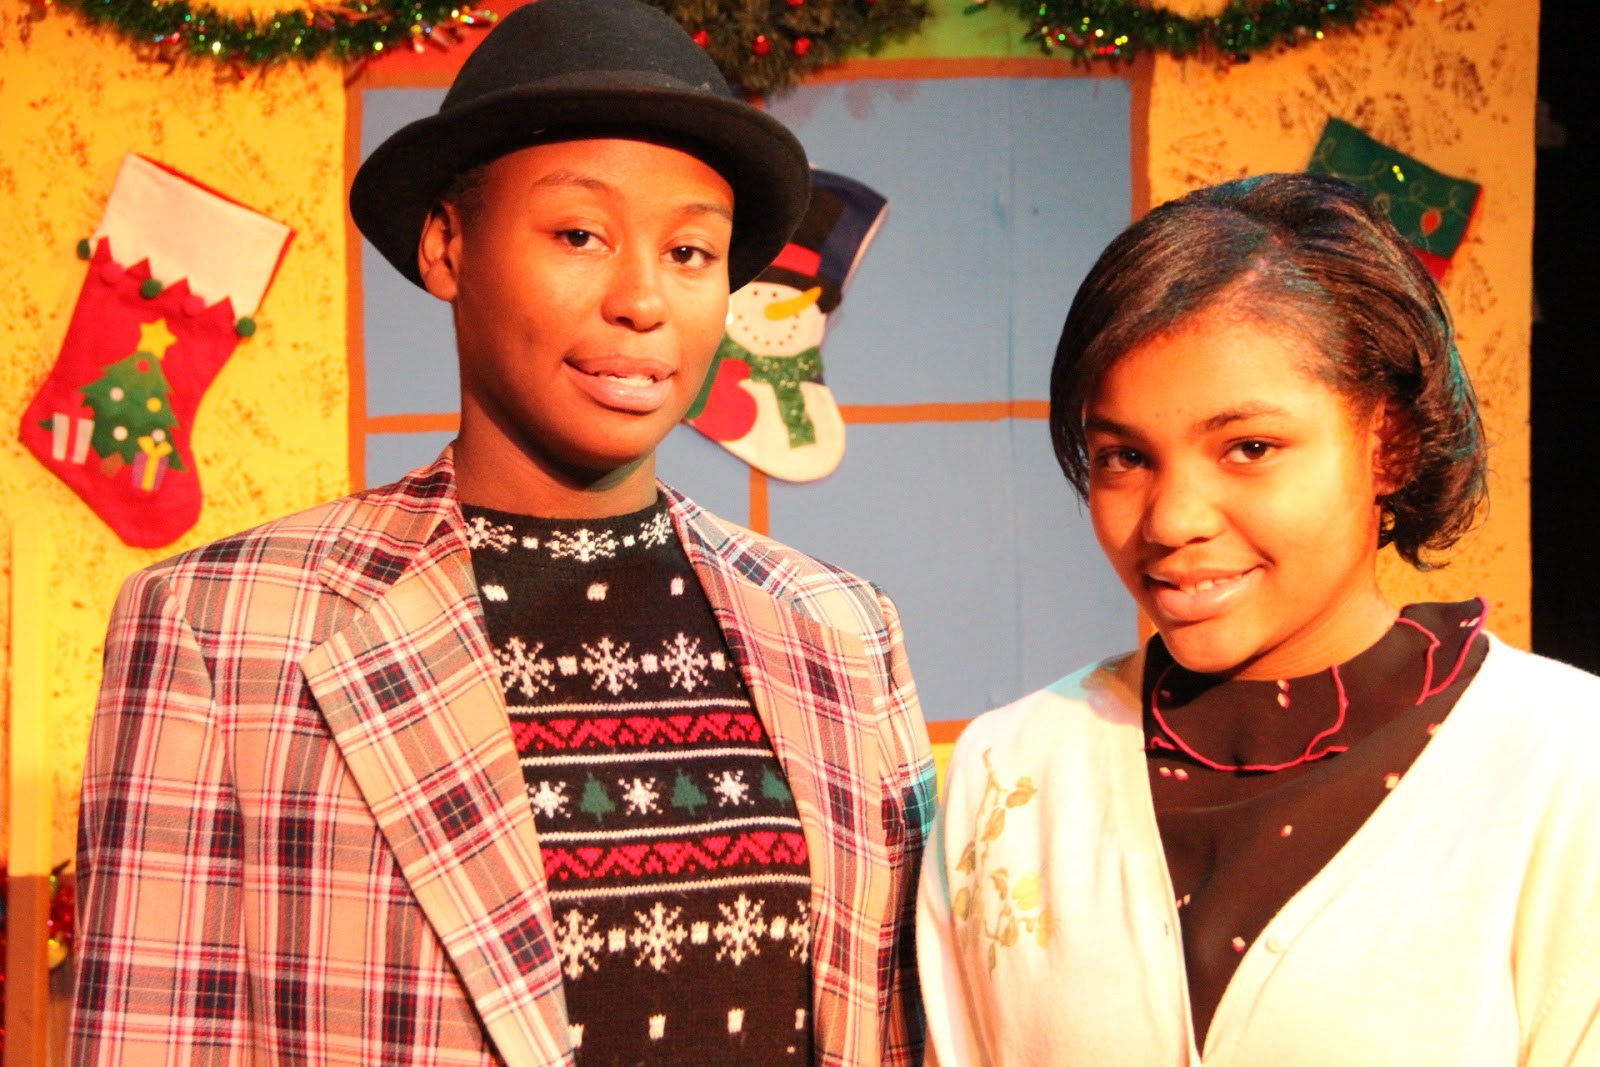 Theatre Arts Program At The African American Cultural